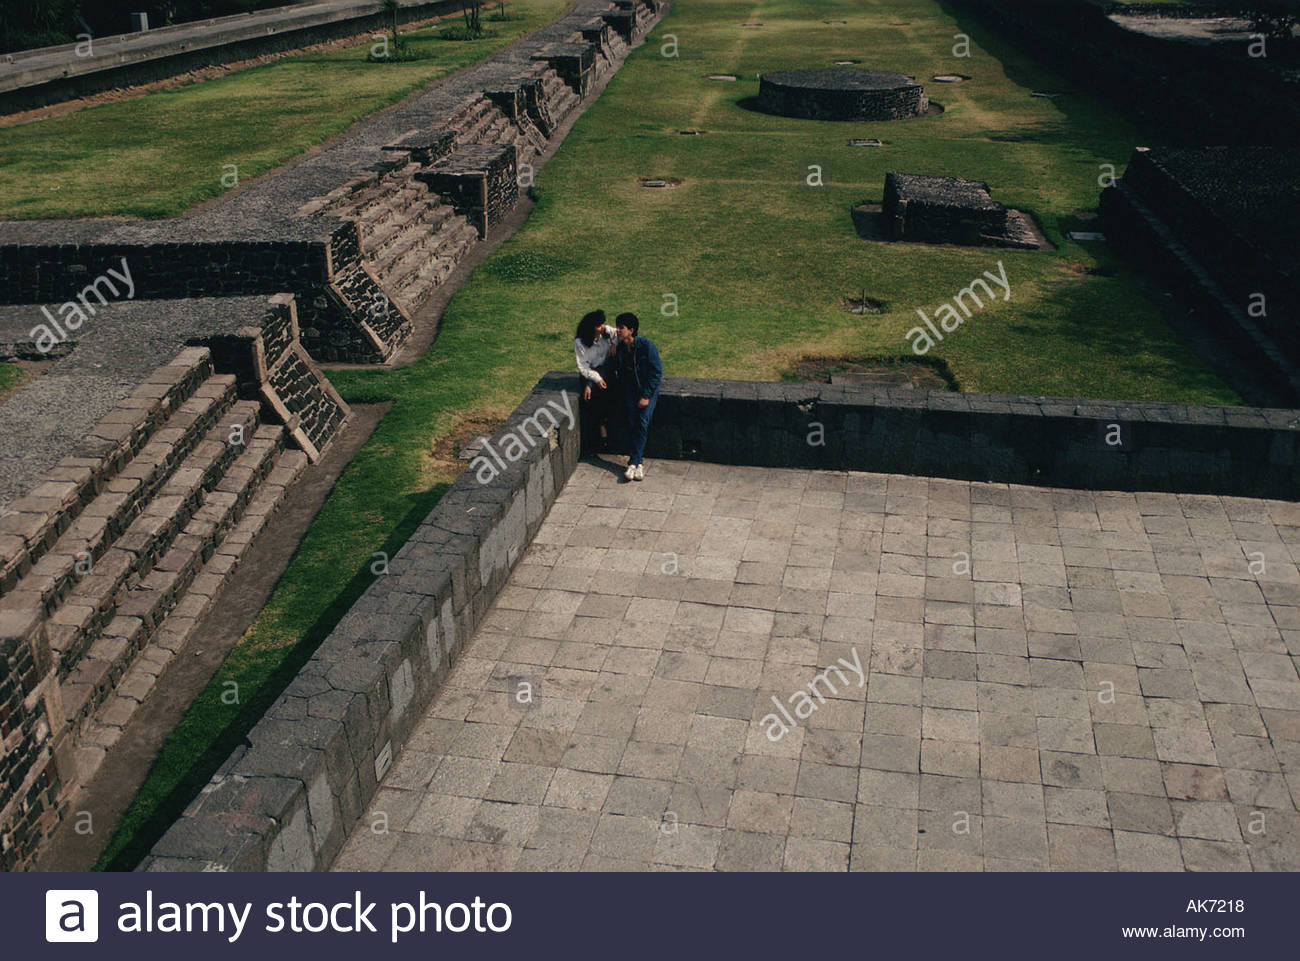 MEXICO Mexico City Plaza of the Three Cultures young couple sitting in the courtyard of a pyramid in the Aztec city: Tlatelolco - Stock Image